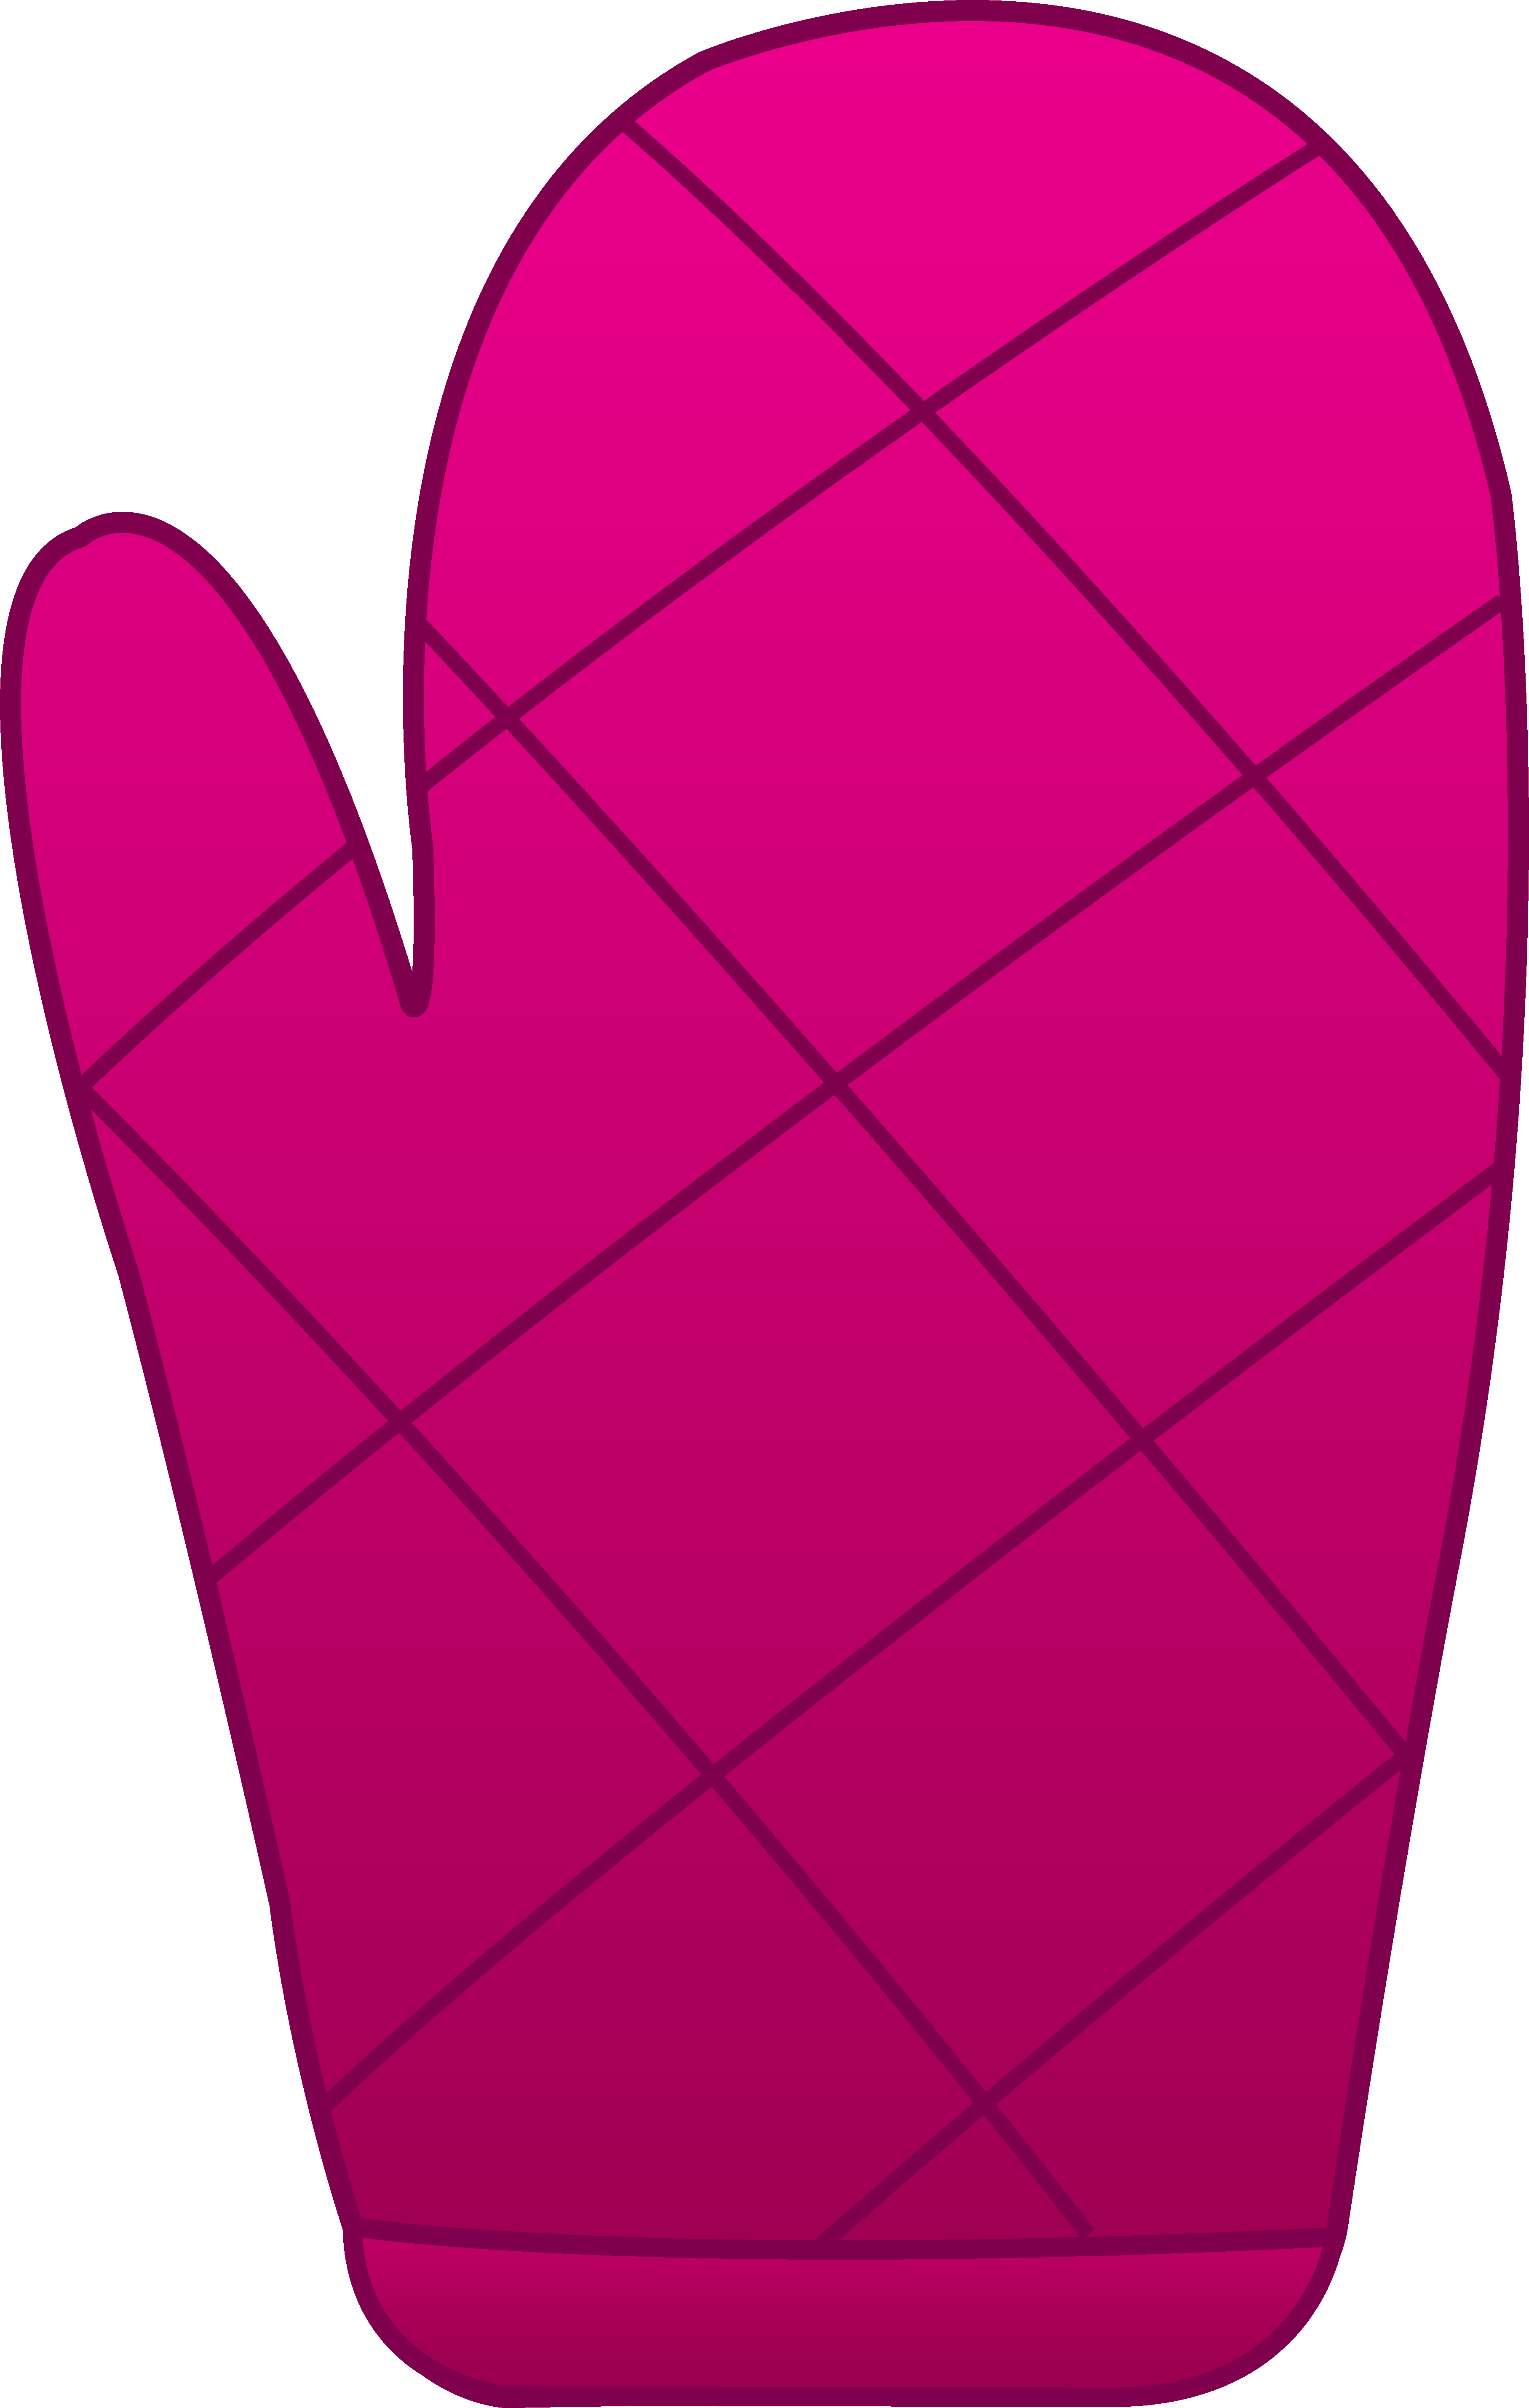 Gloves clipart. Free cliparts download clip